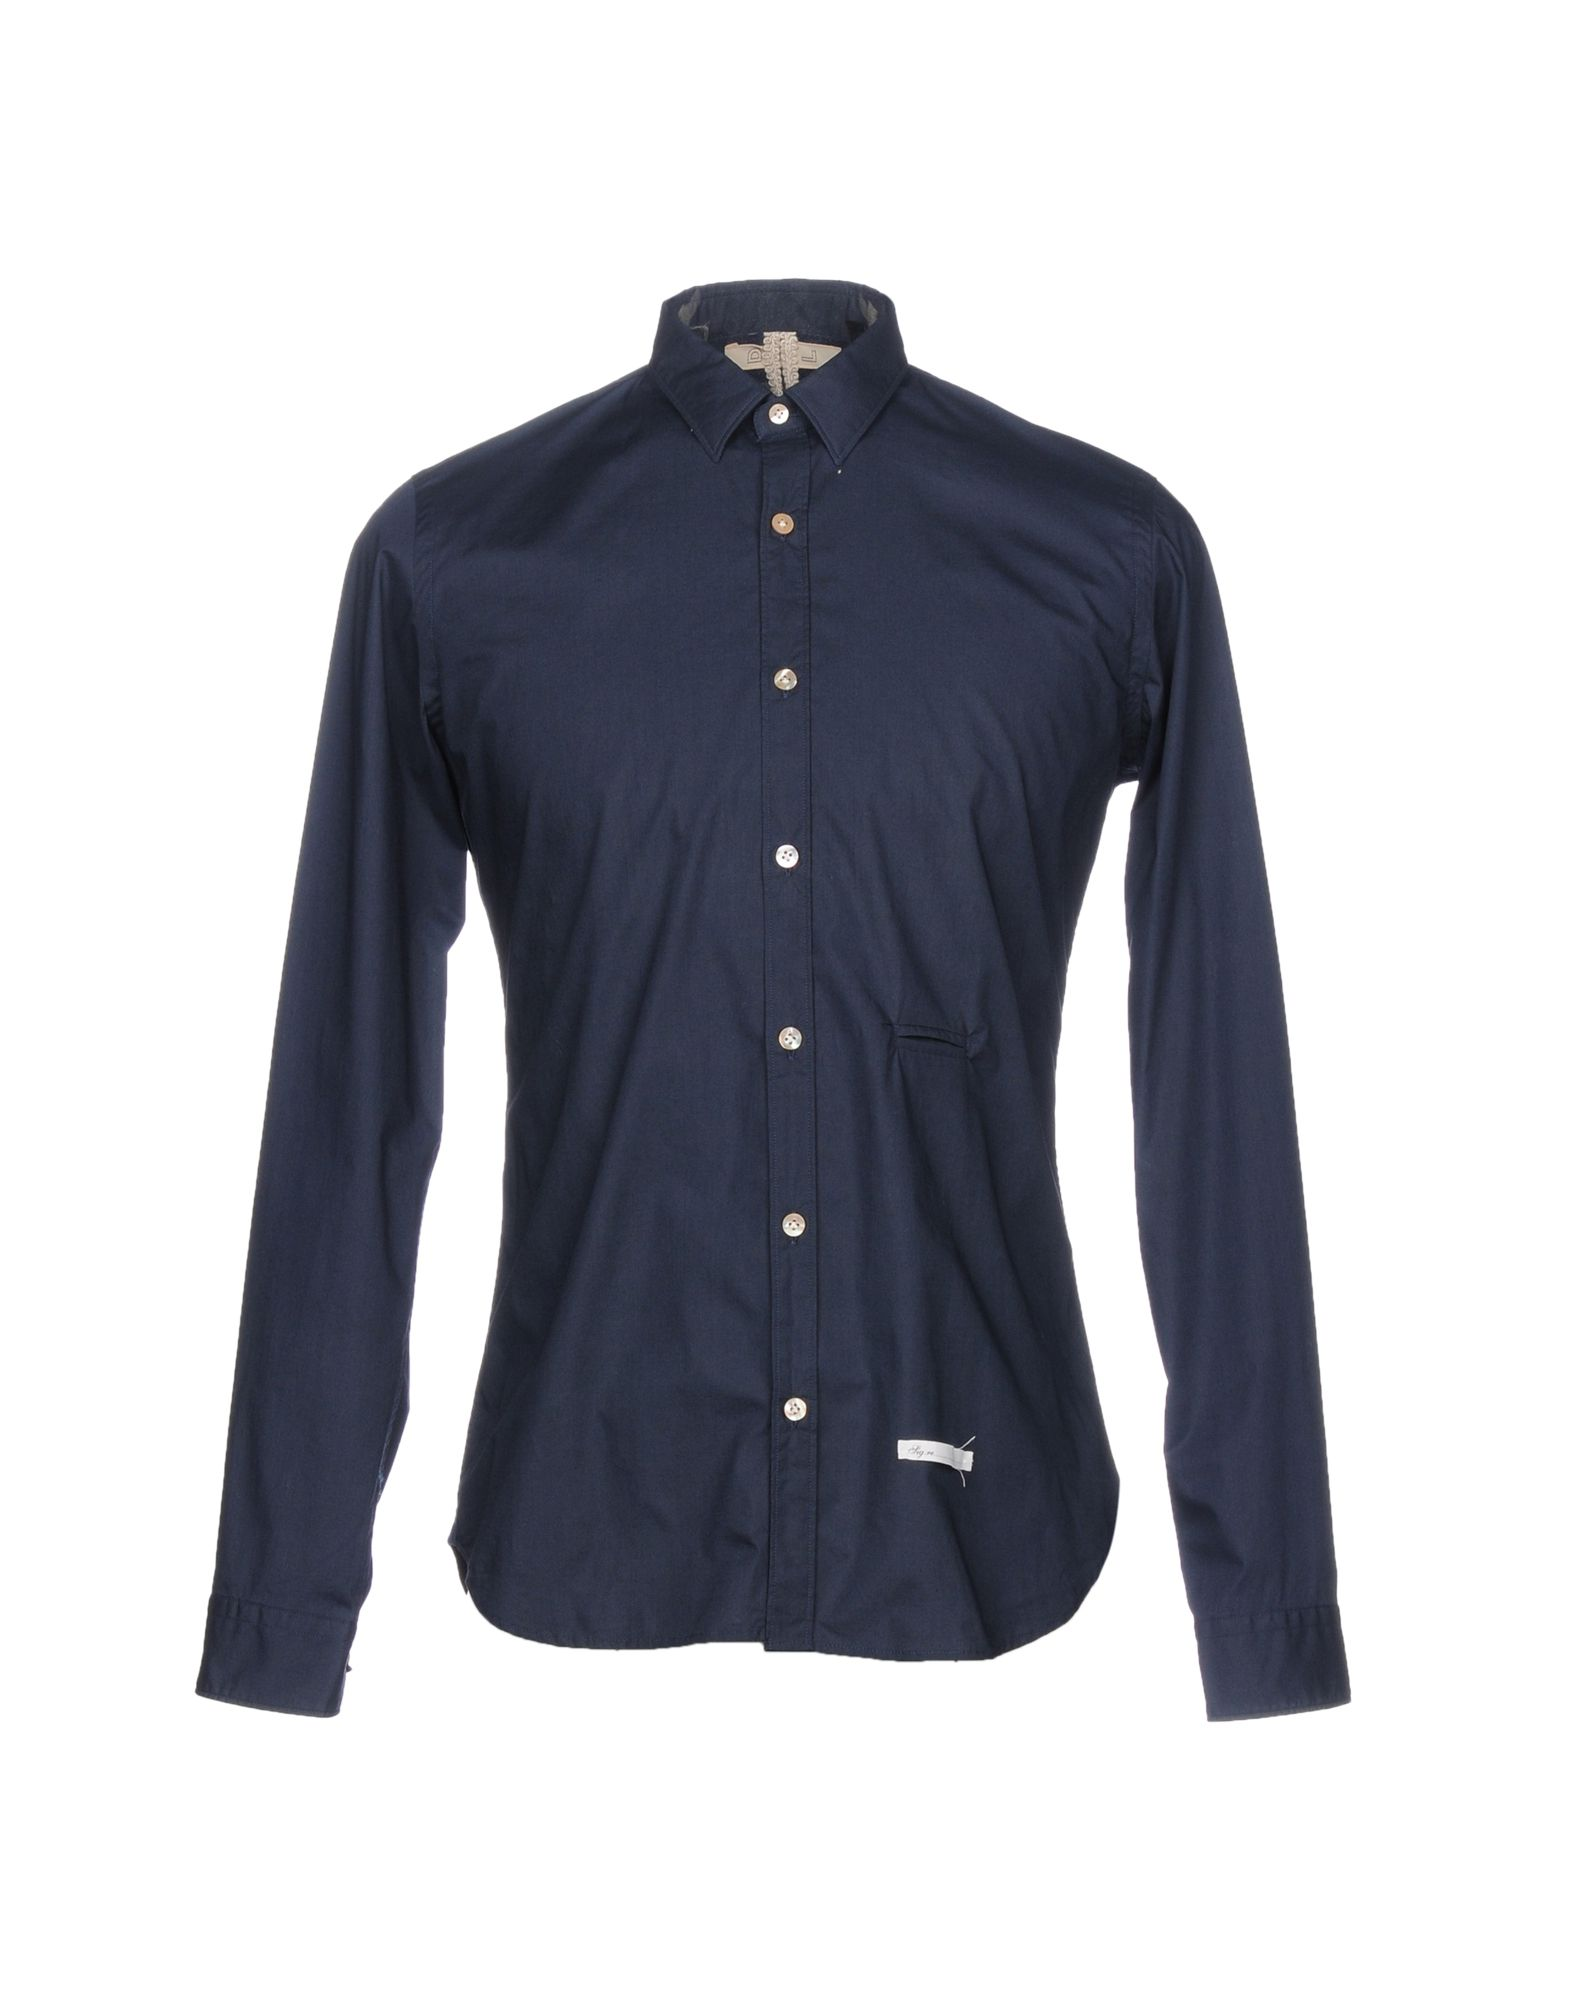 DNL Solid Color Shirt in Dark Blue